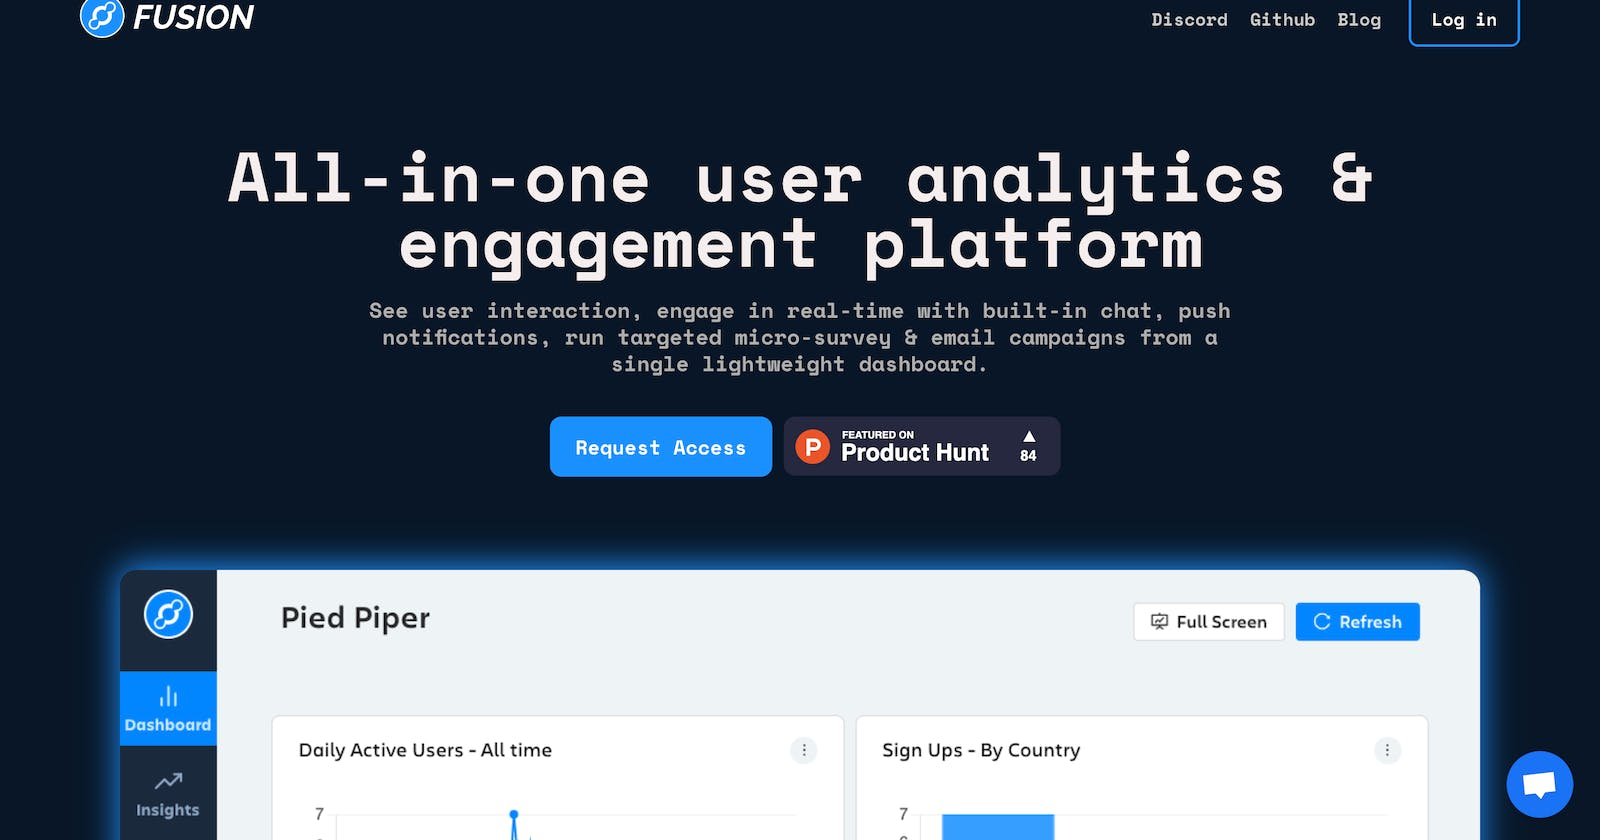 Building FusionHQ - All-in-one user analytics & engagement platform.